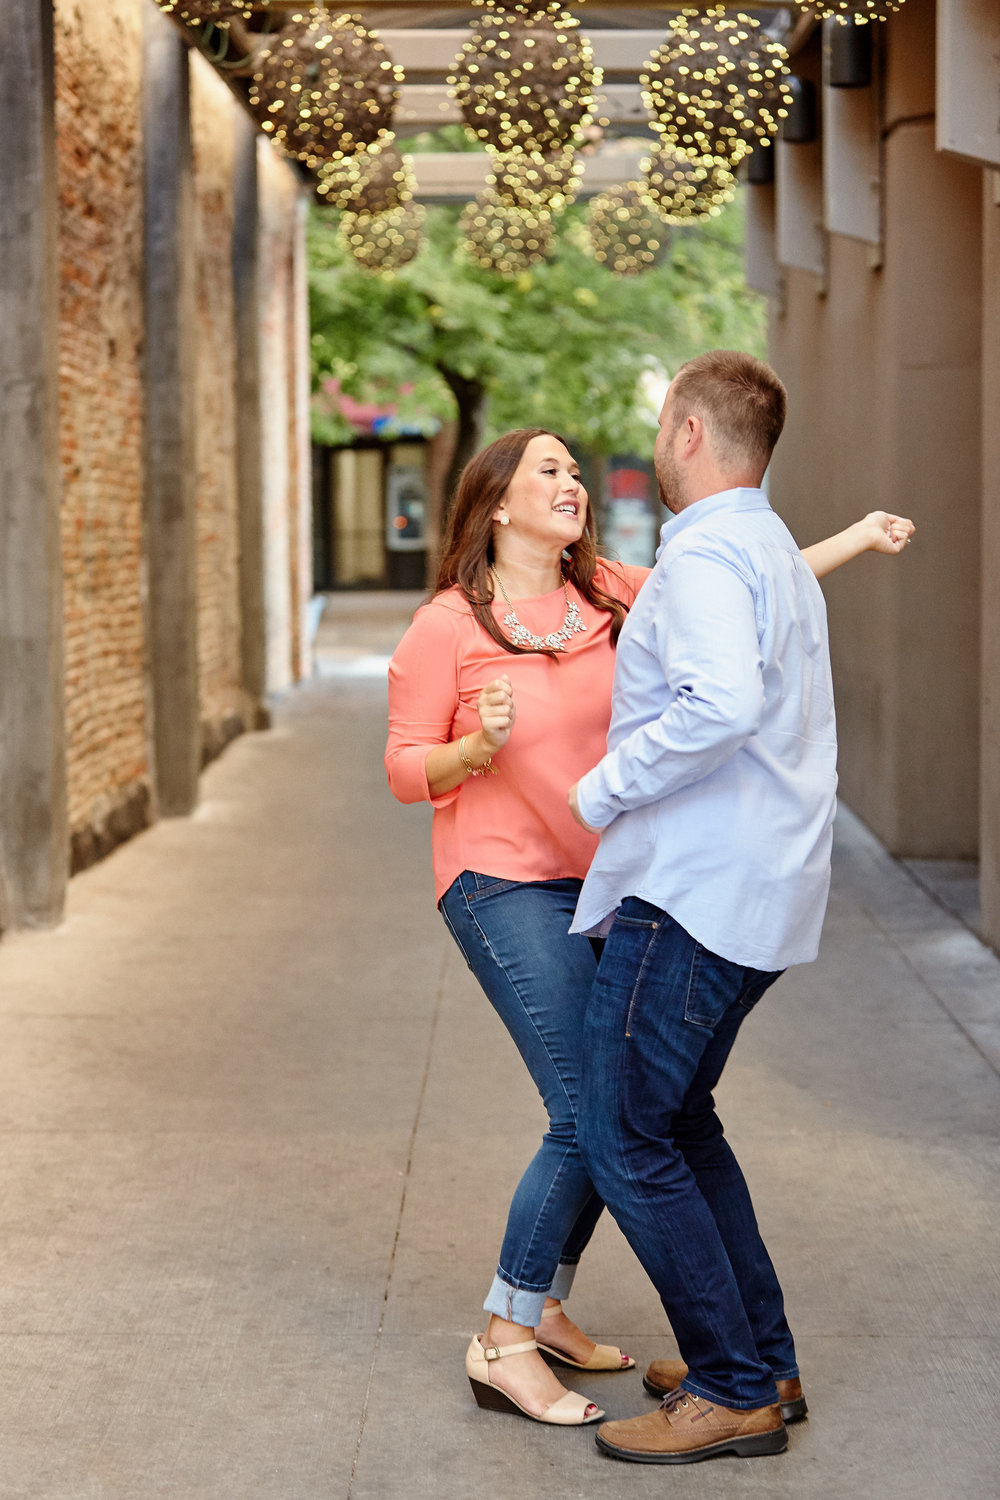 Iowa City Engagement Session by St Louis Wedding Photographers Oldani Photography 37.jpg